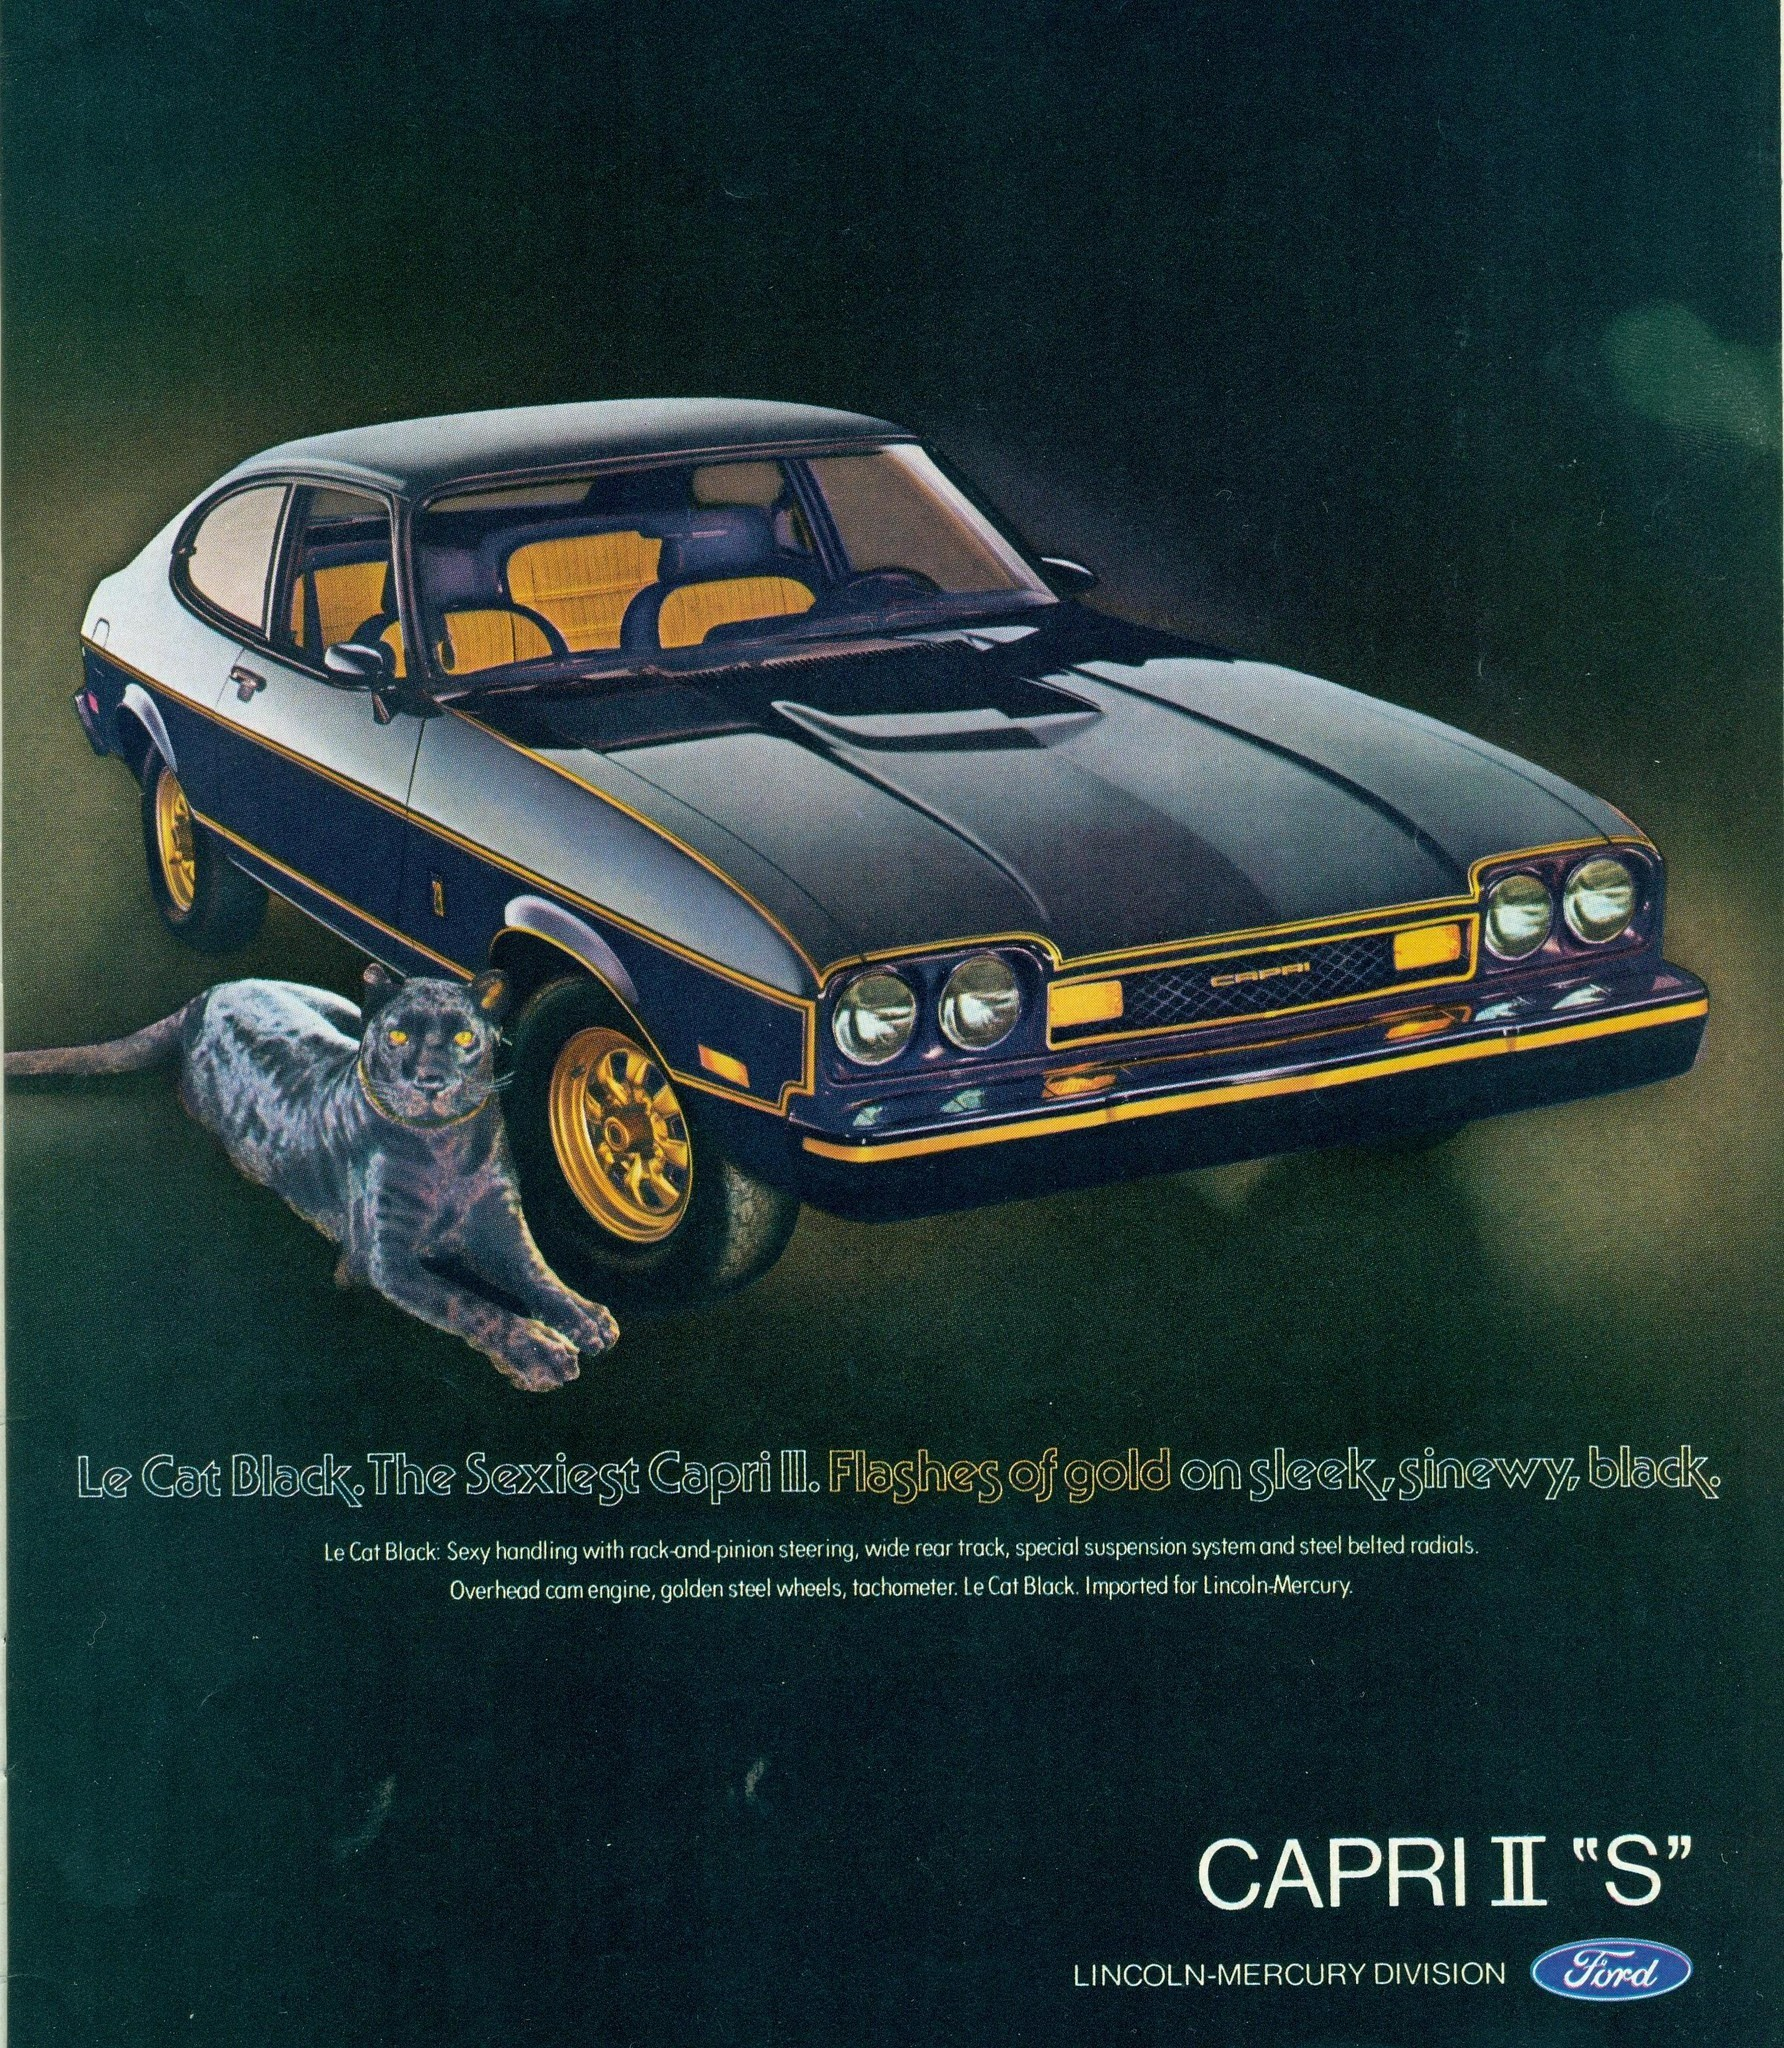 The Car You Always Promised Yourself Ford Capri Ads From